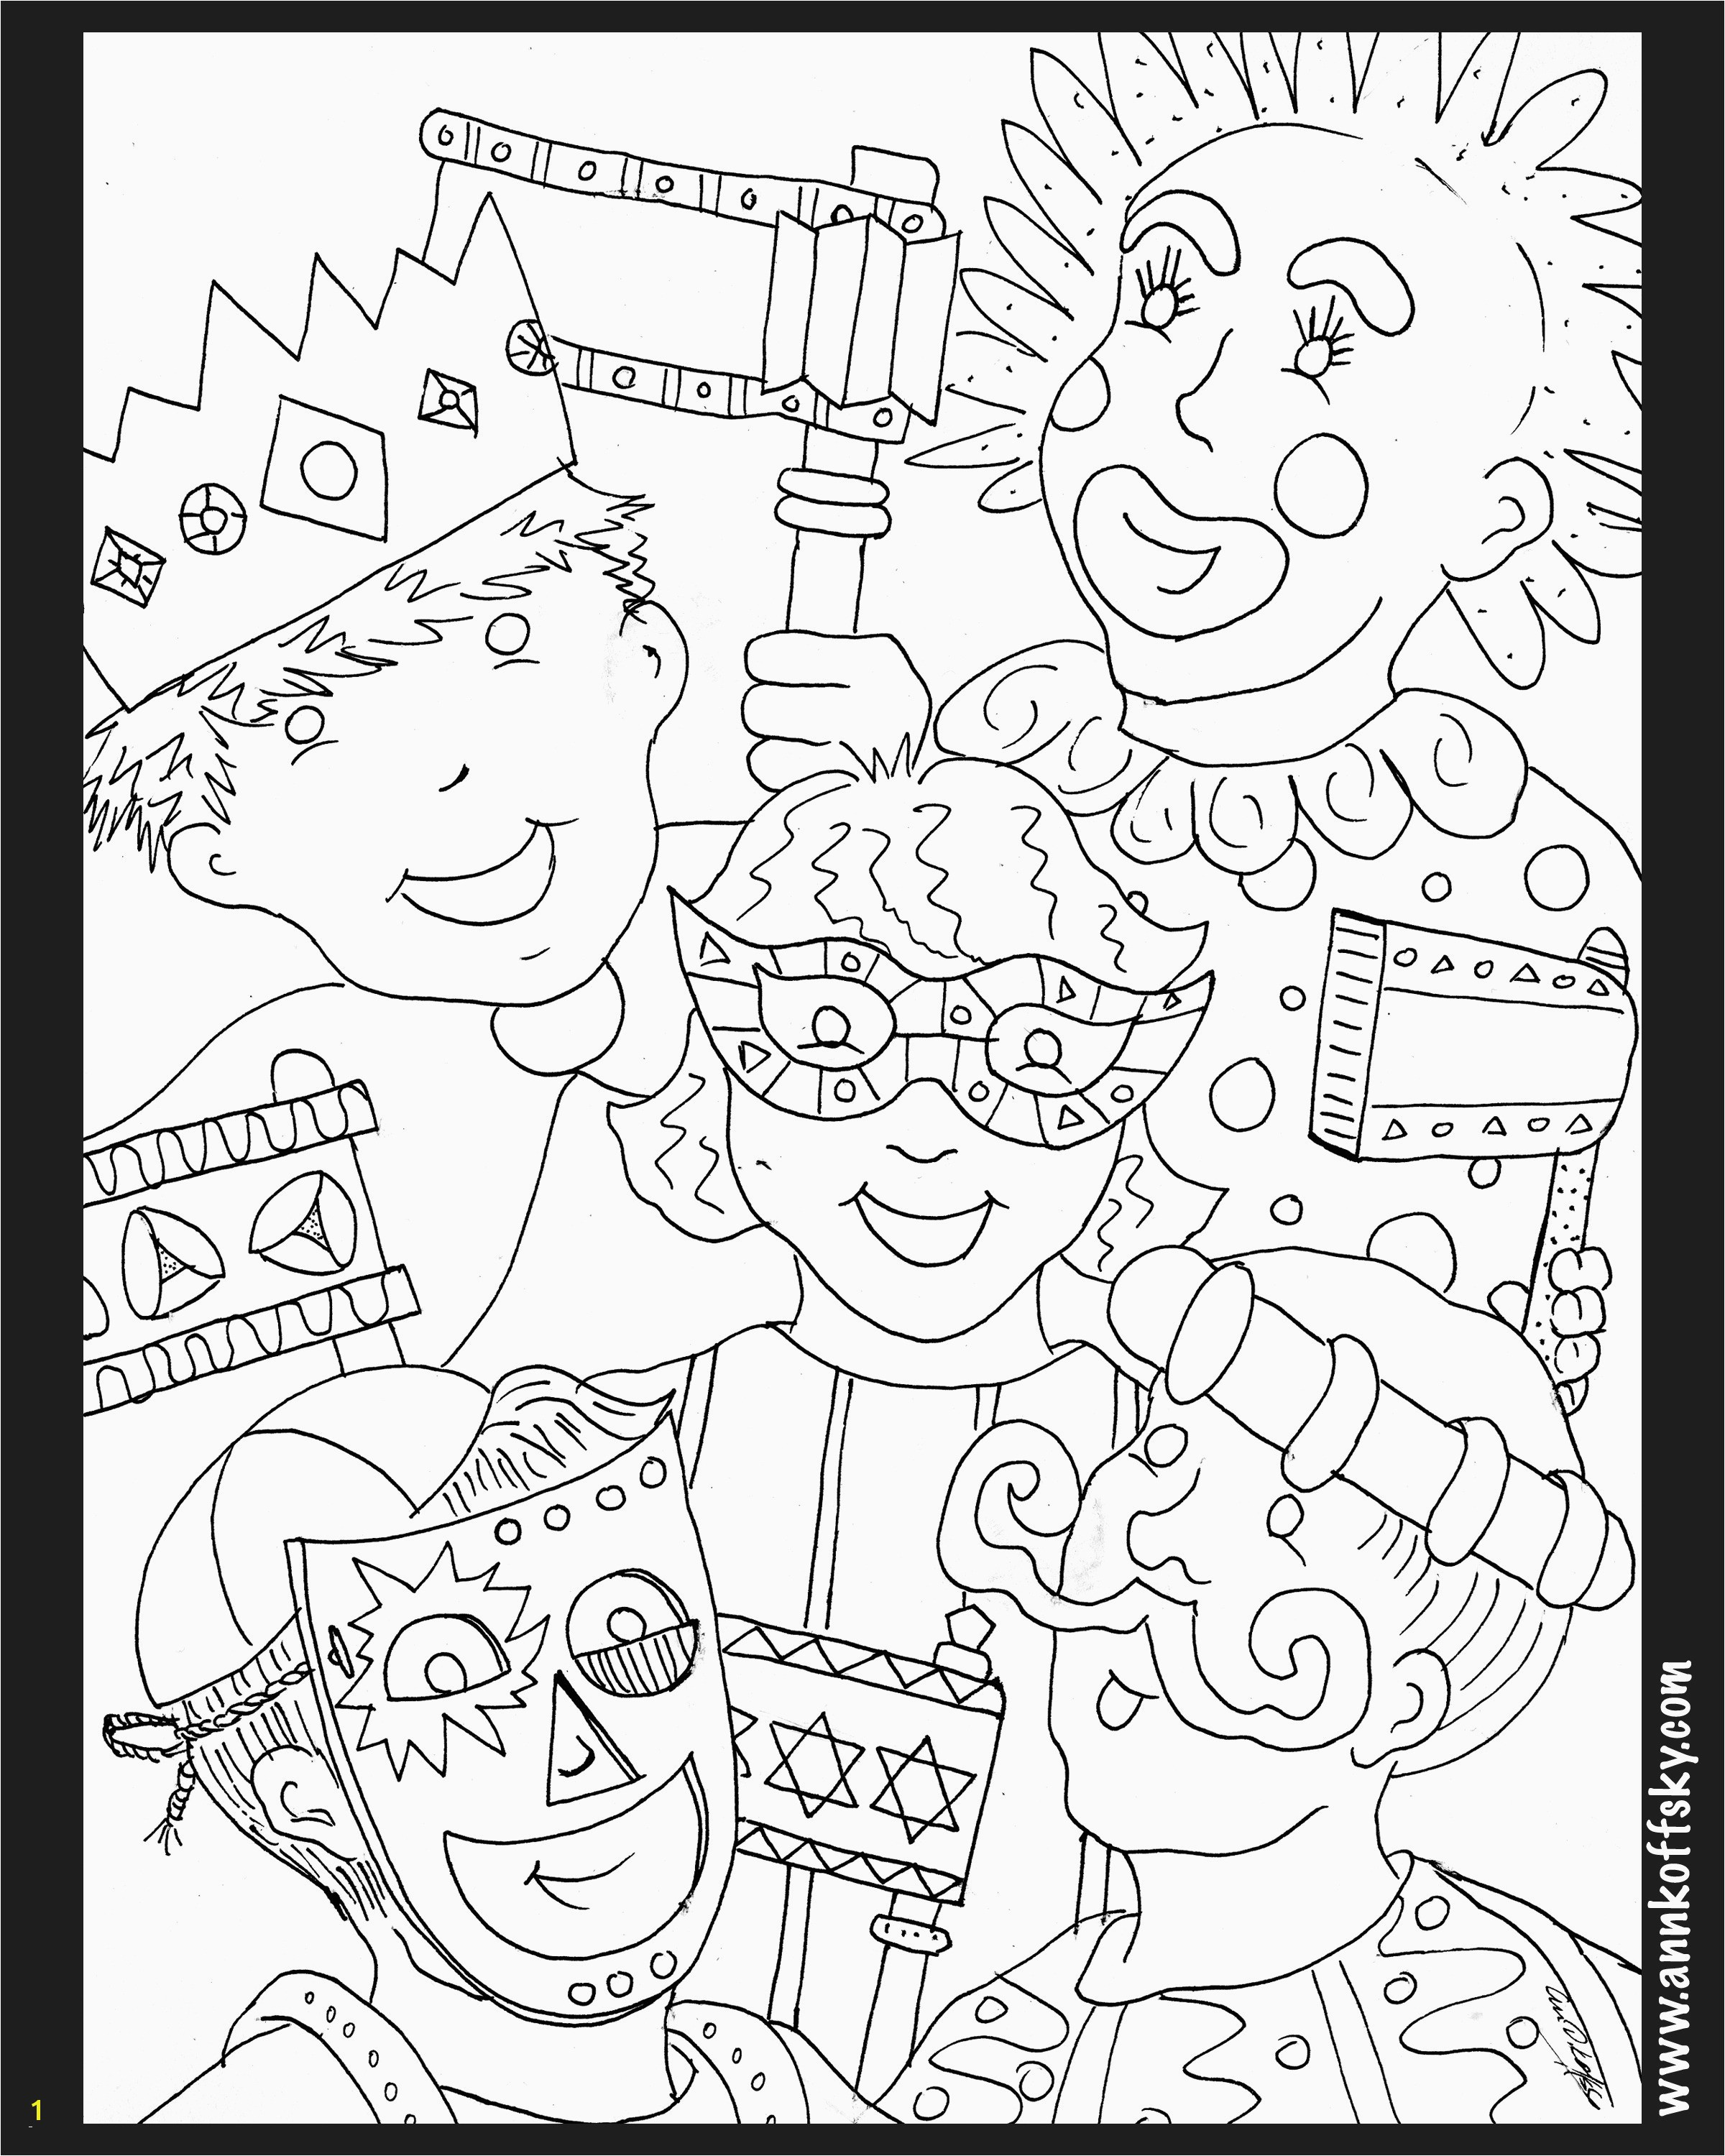 Tu B Shevat Coloring Pages Elegant Purim Coloring Pages Heathermarxgallery Tu B Shevat Coloring Pages